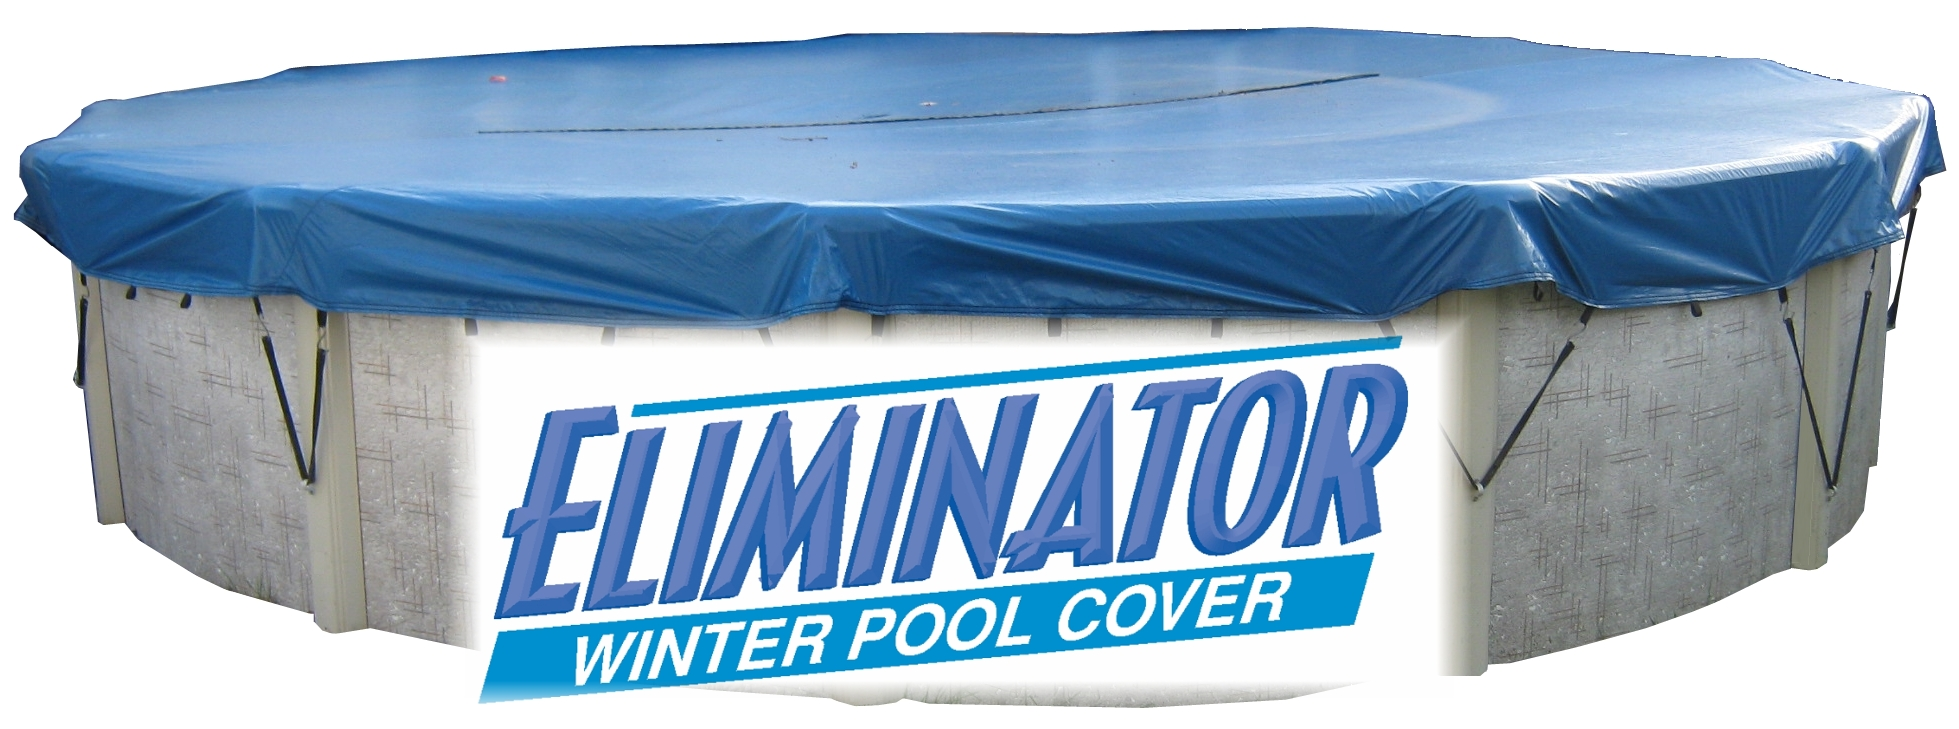 Eliminator Winter Cover Above Ground